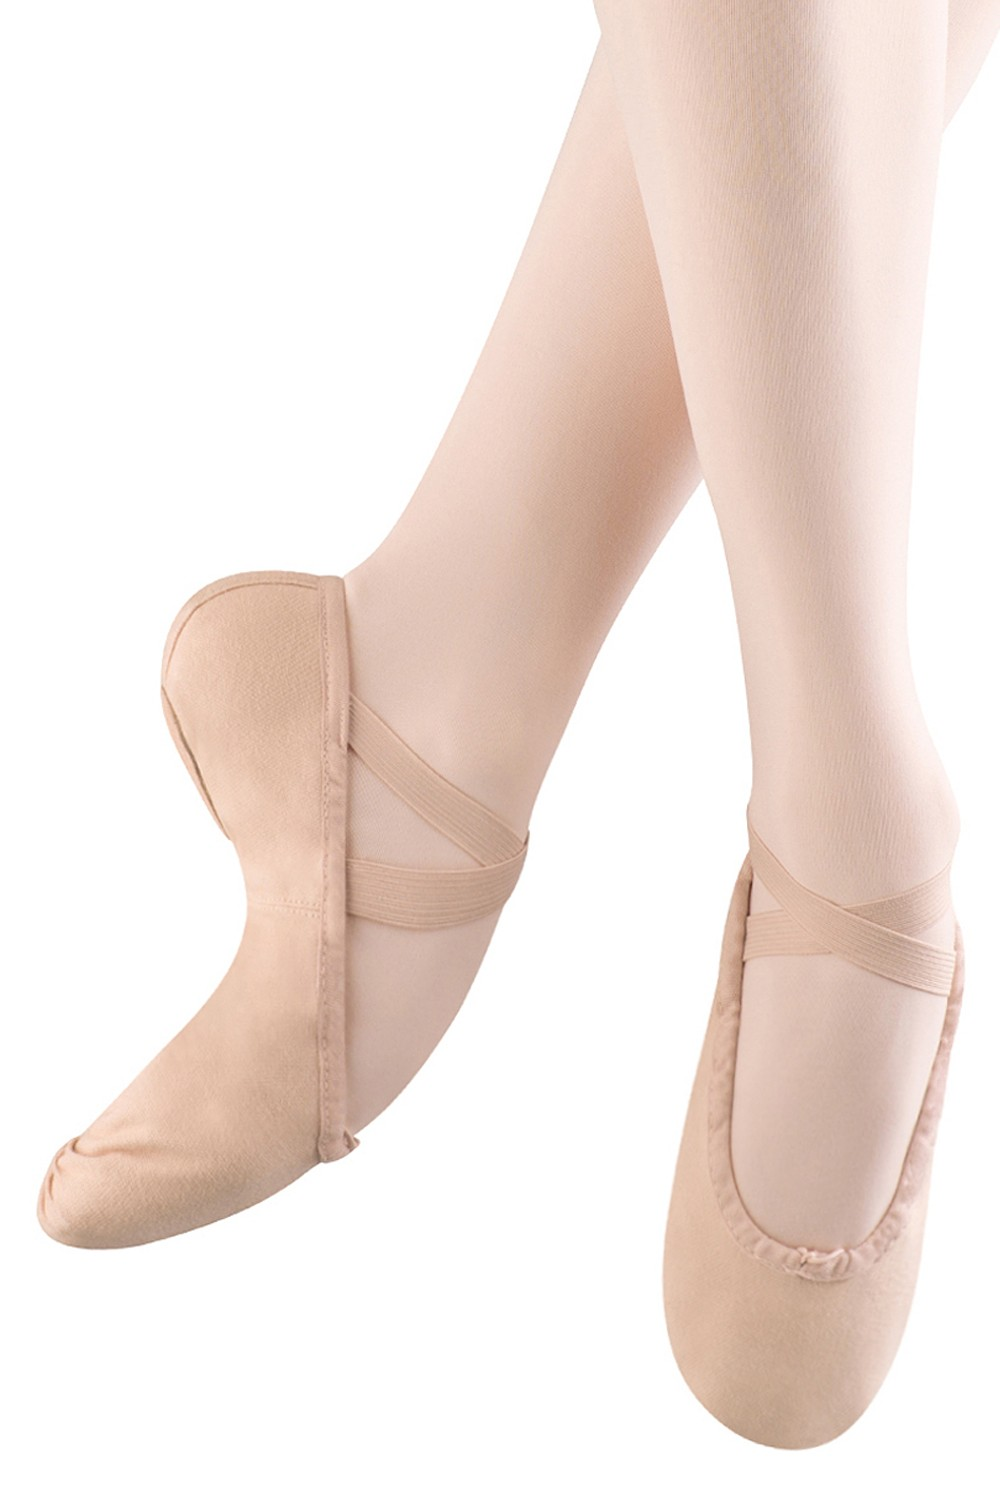 Watch Ballerina Shoes porn videos for free, here on londonmetalumni.ml Discover the growing collection of high quality Most Relevant XXX movies and clips. No other sex tube is more popular and features more Ballerina Shoes scenes than Pornhub! Browse through our impressive selection of porn videos in HD quality on any device you own.